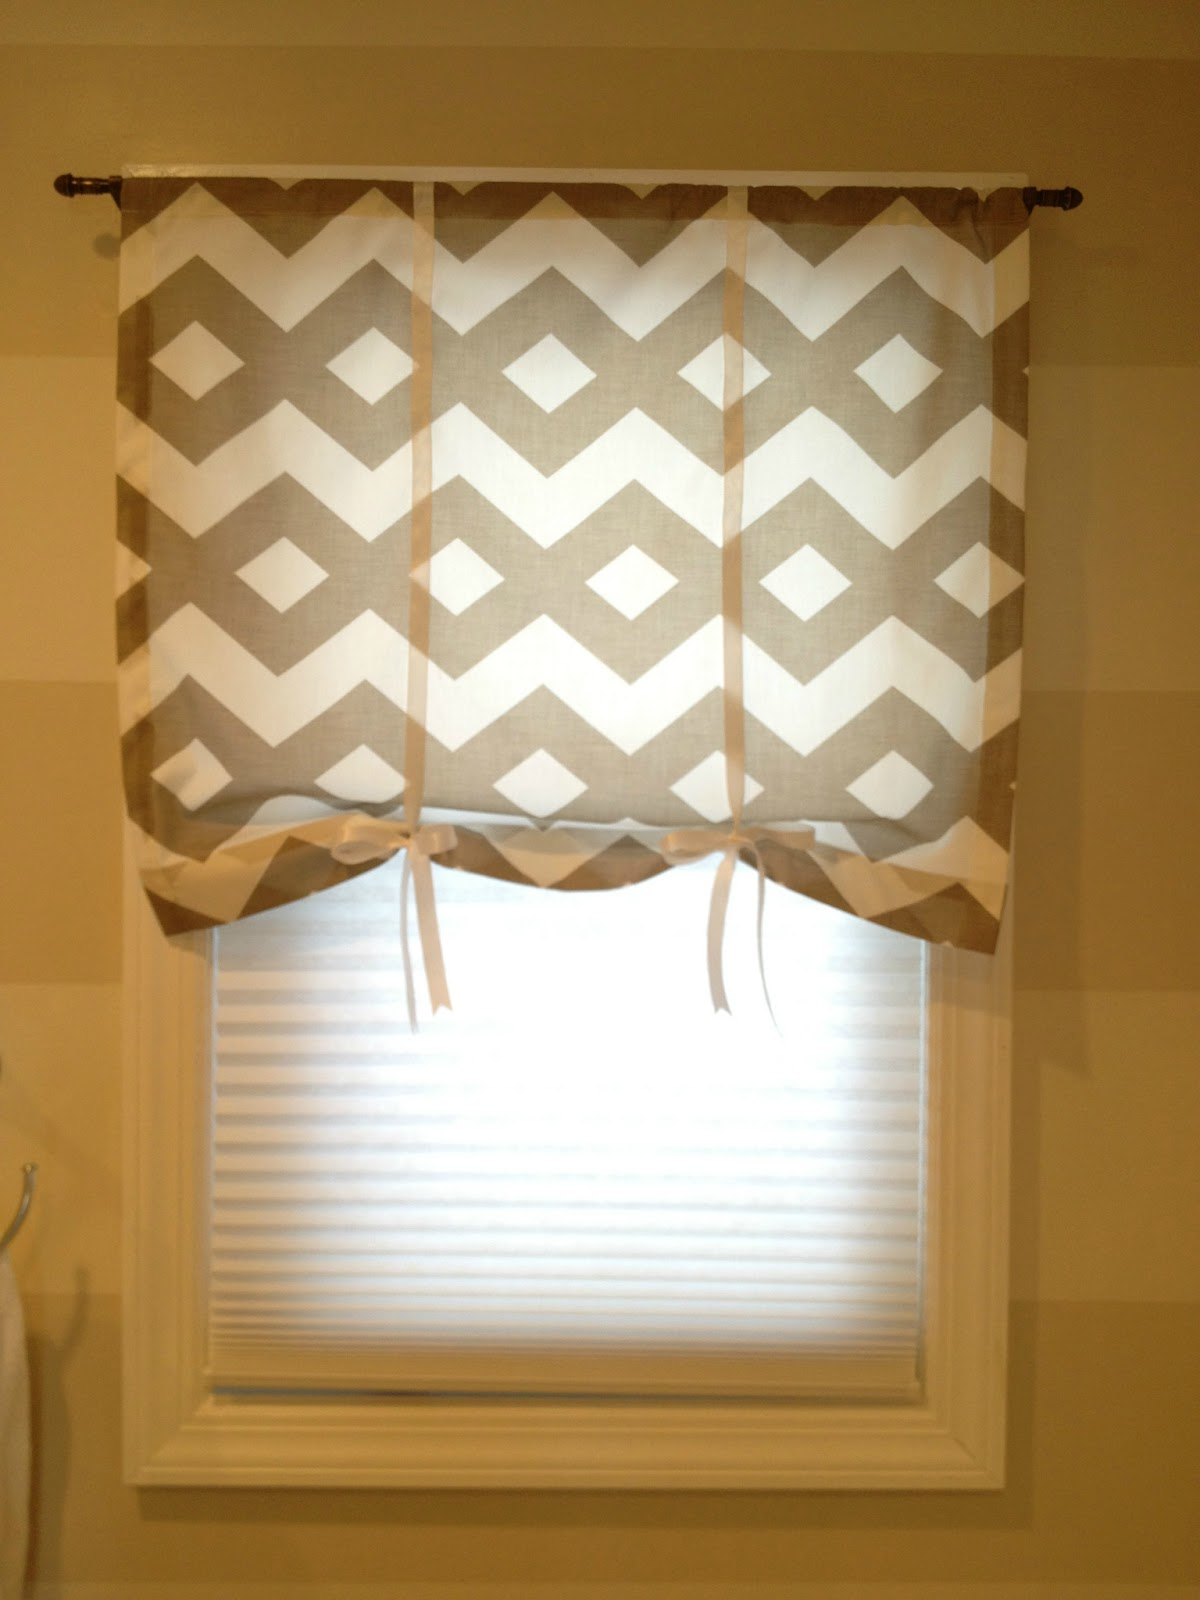 Retro ranch reno main guest bathroom curtain for Curtain styles for small windows